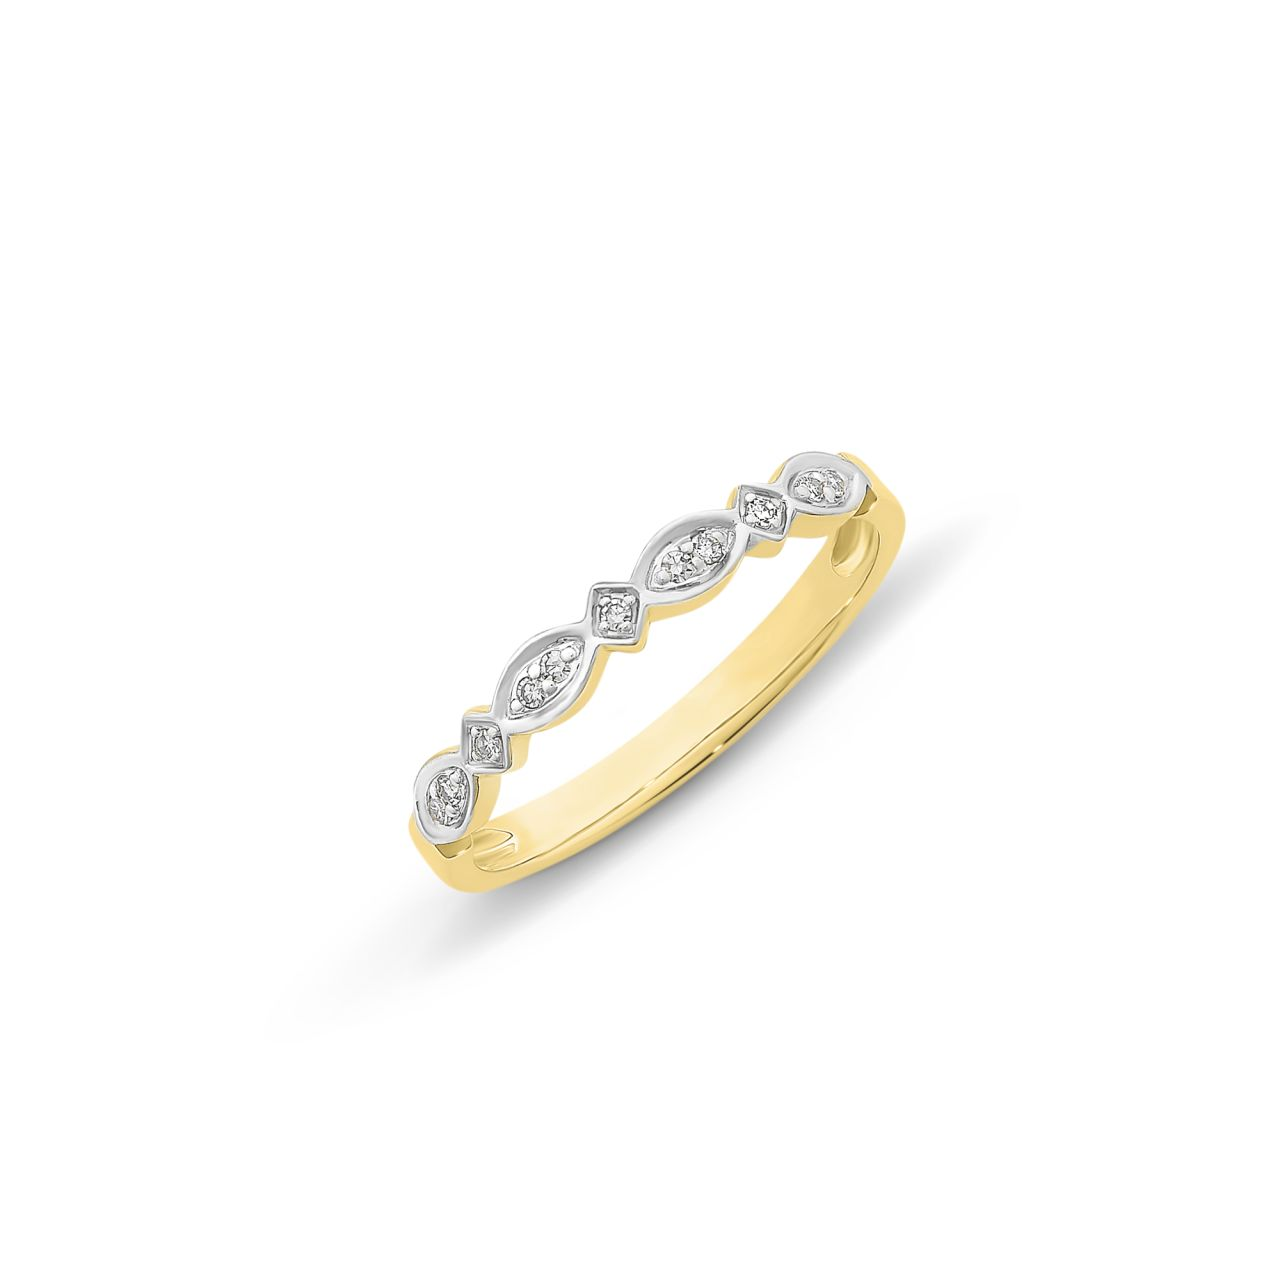 9CT YG DIAMOND RING